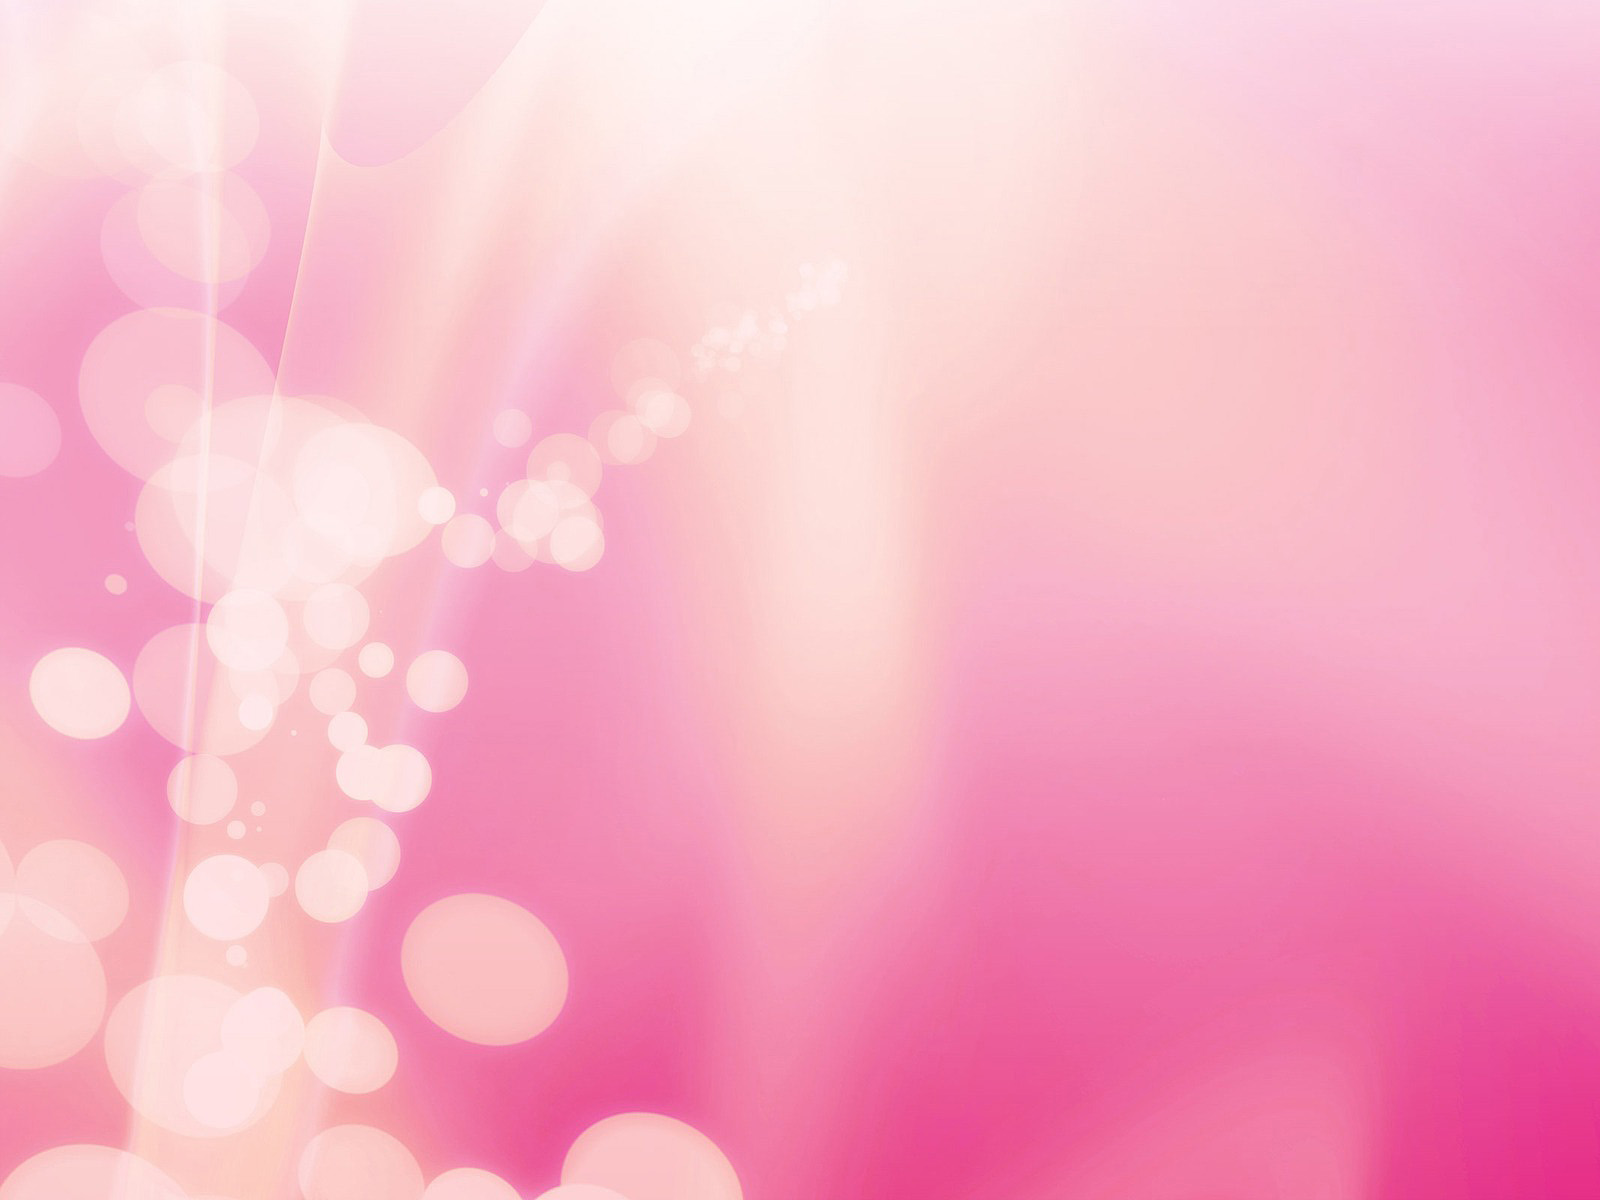 pink and white background - HD1600×1200